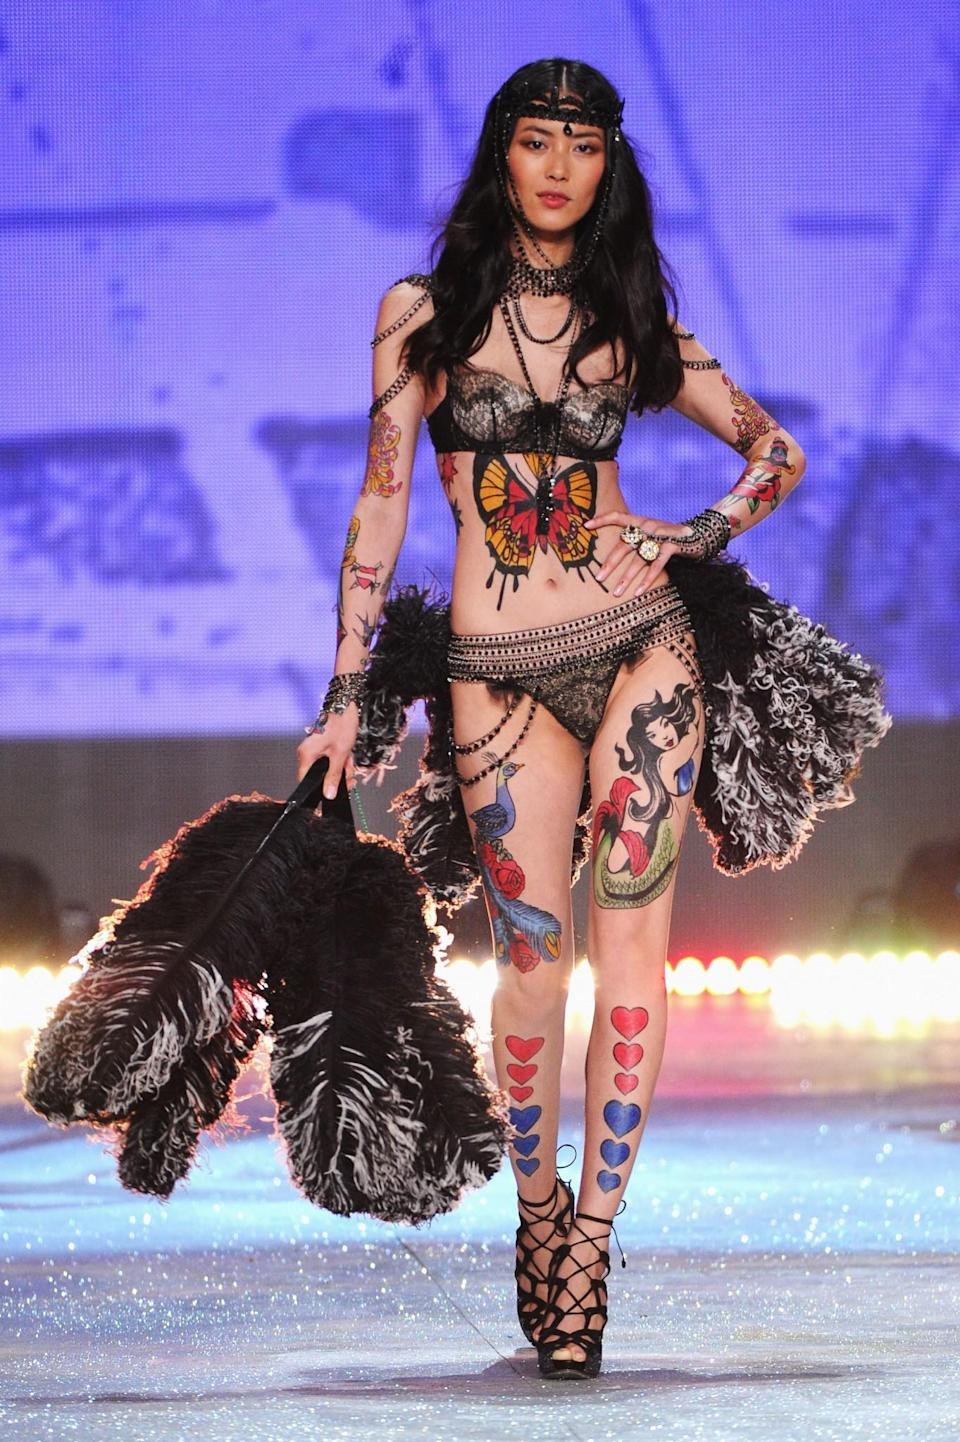 Liu Wen was the first Chinese model to walk on the Victoria's Secret runway. (Photo: Getty Images)